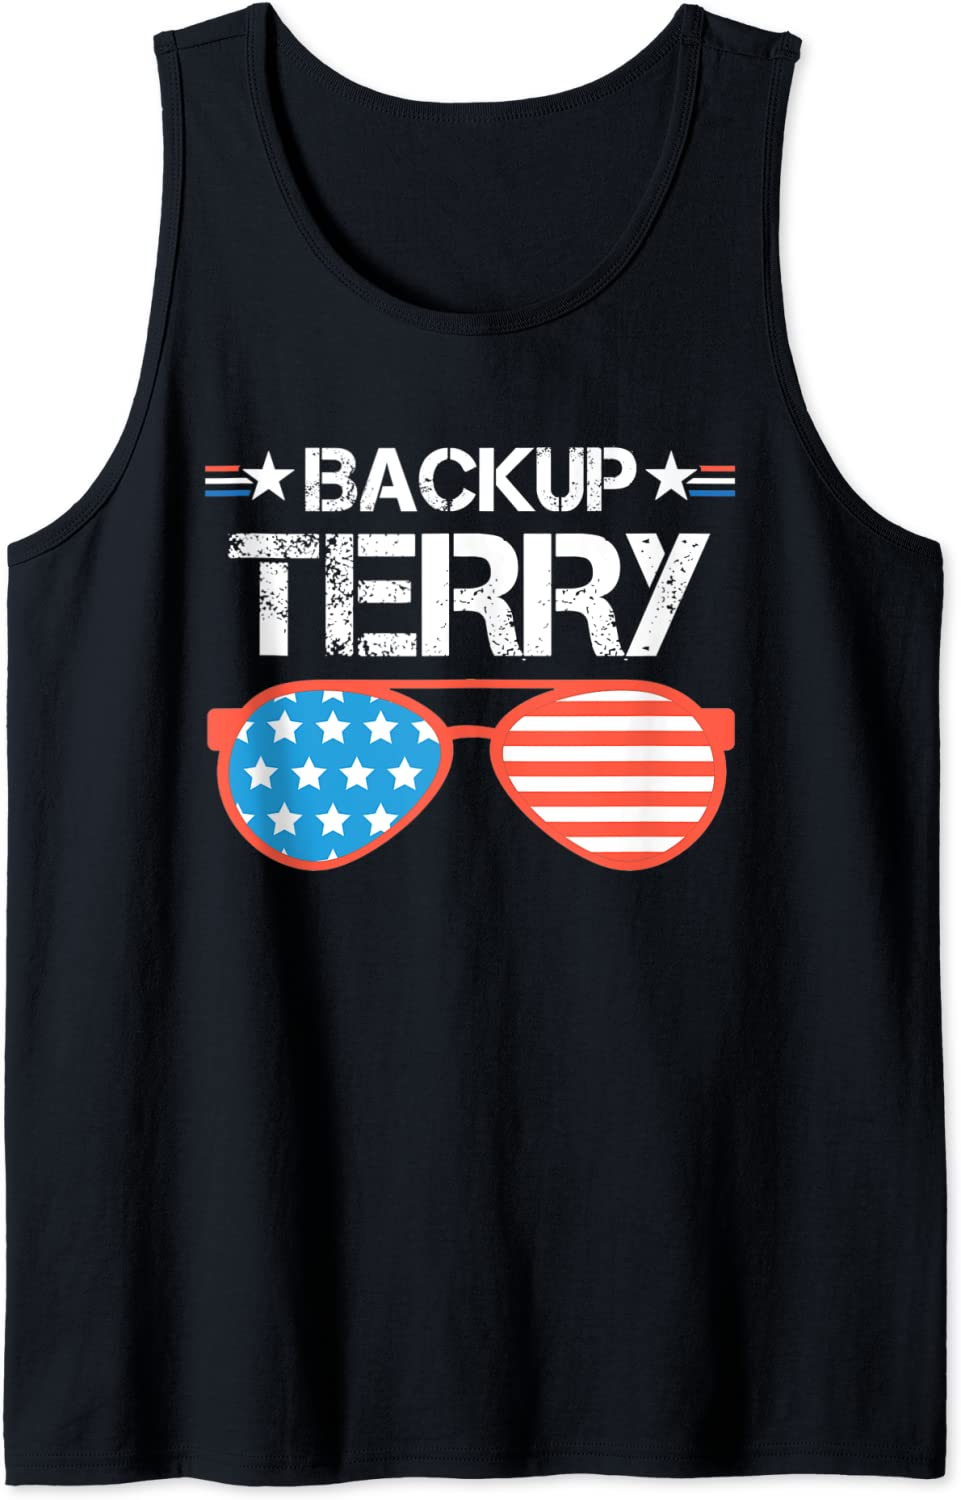 Back Up Terry American Flag USA Tank July Of 4th Gift 2021 Sunglasses Alternative dealer